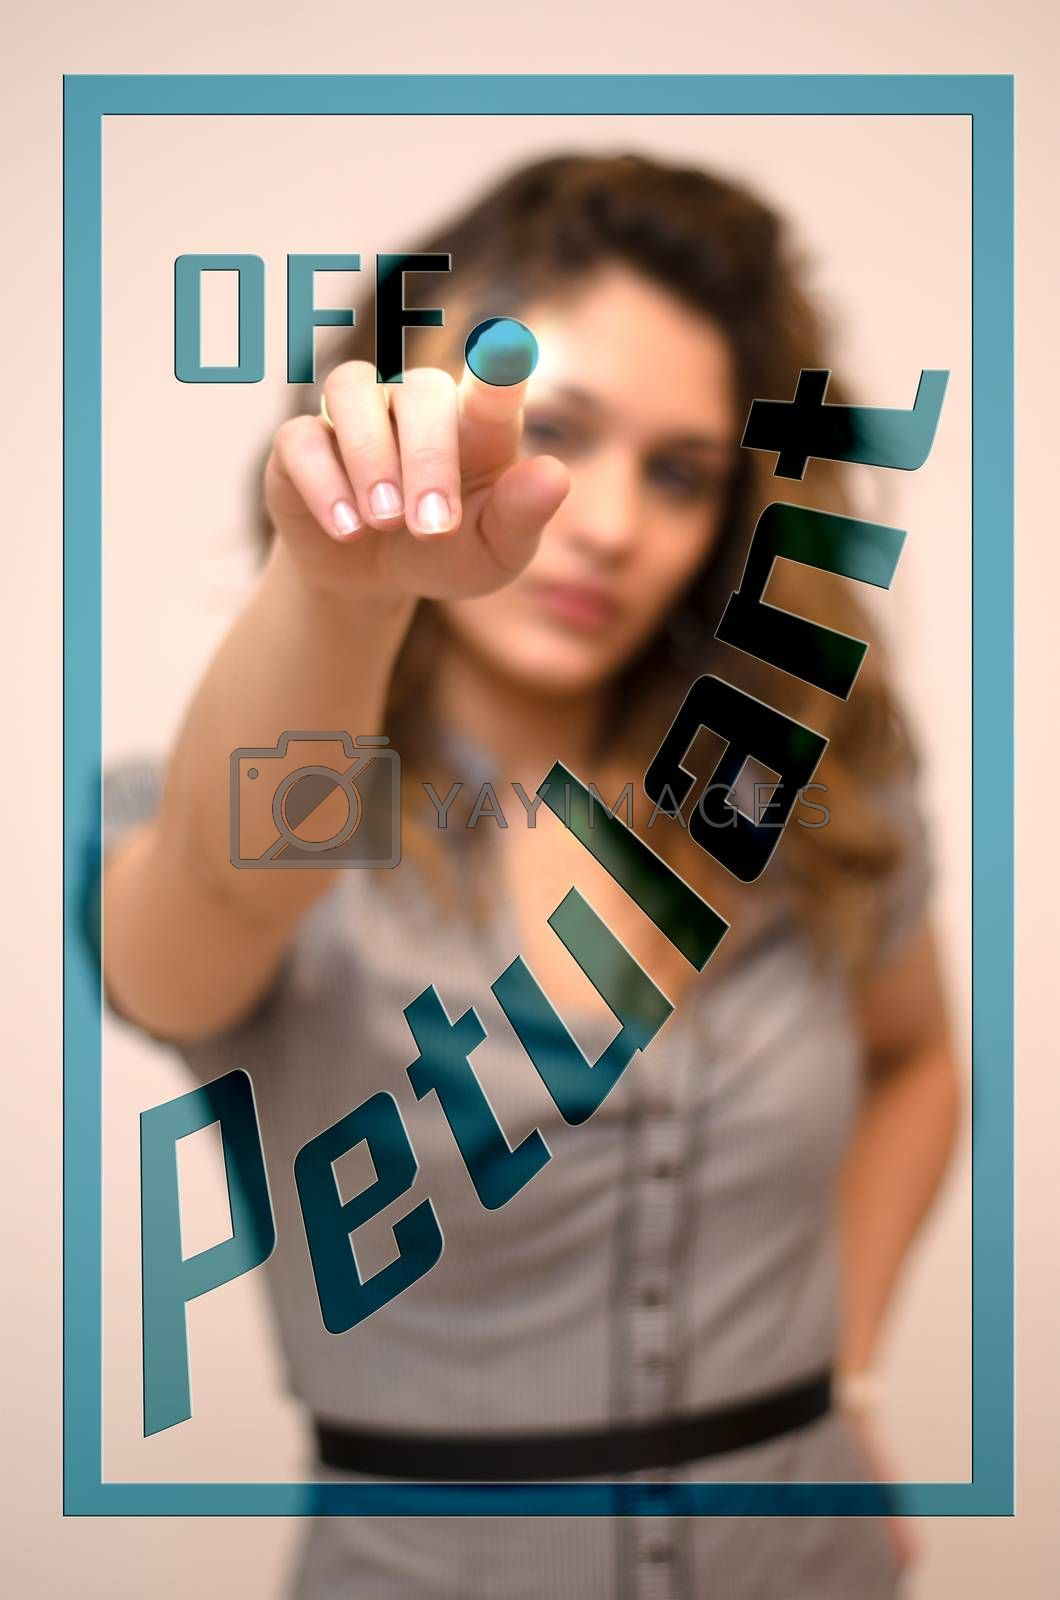 Royalty free image of anger management, turn off Petulant  by vepar5